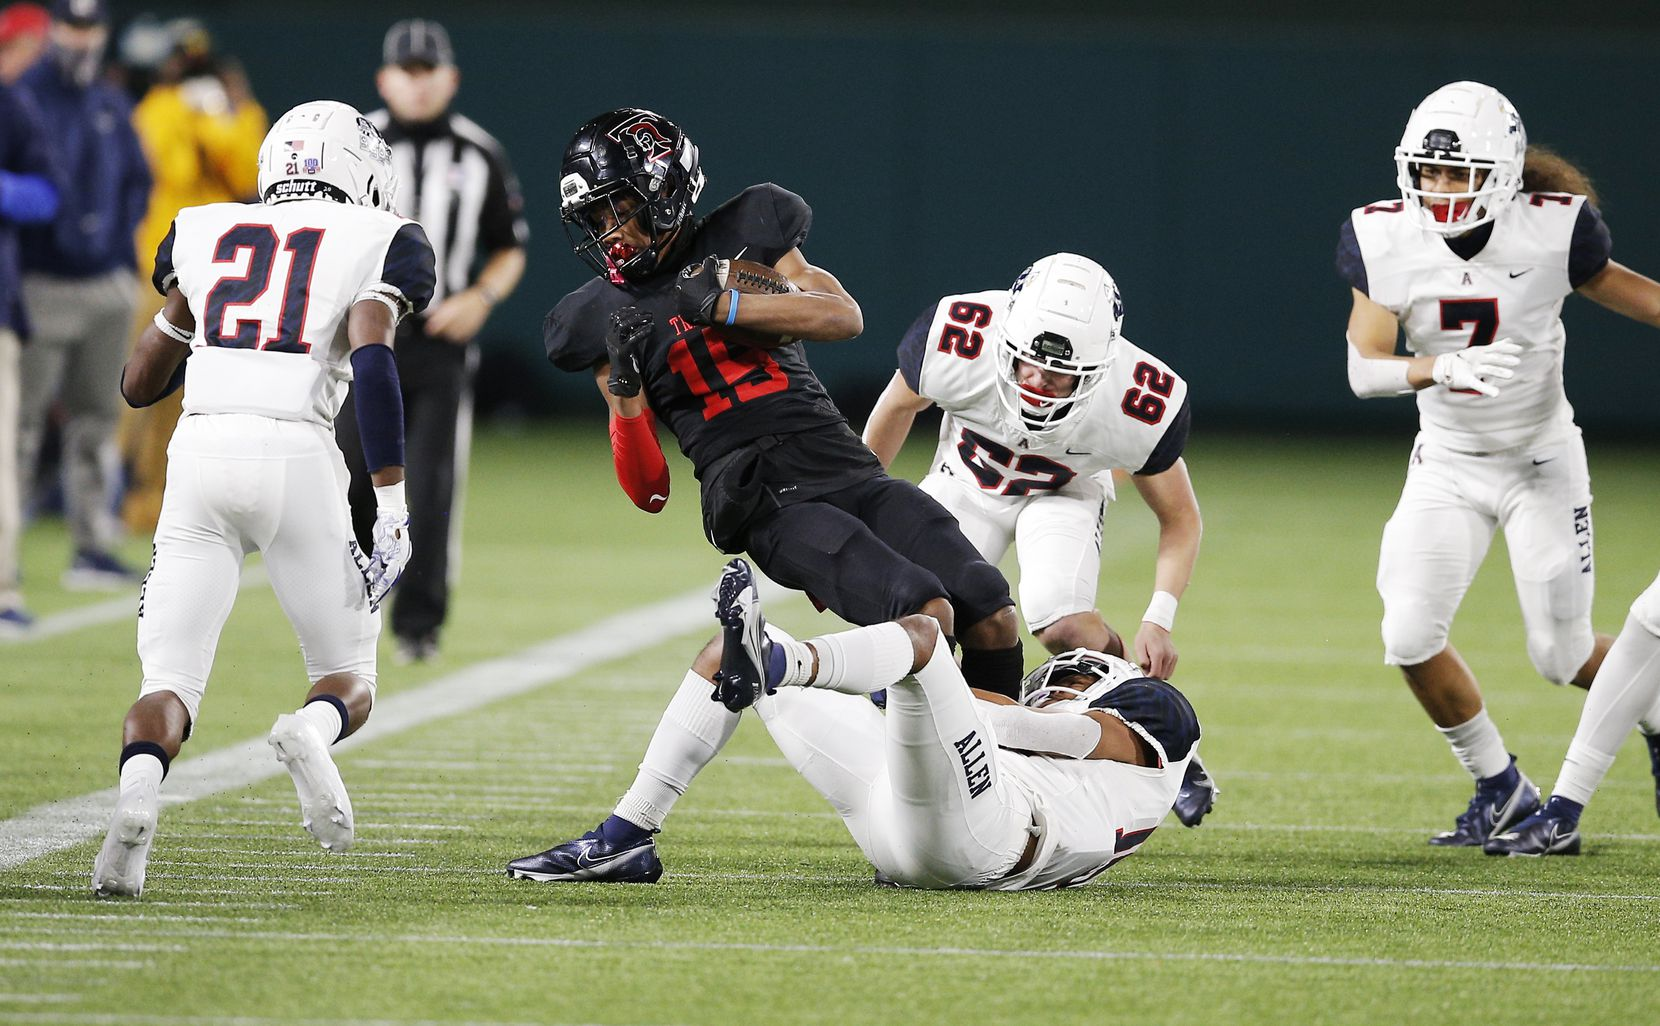 Euless Trinity junior wide receiver Pofele Ashlock (15) is tackled by Allen senior defensive back Alexander Green during the first half of a high school Class 6A Division I Region I semifinal football game at Globe Life Park in Arlington, Saturday, December 26, 2020. (Brandon Wade/Special Contributor)